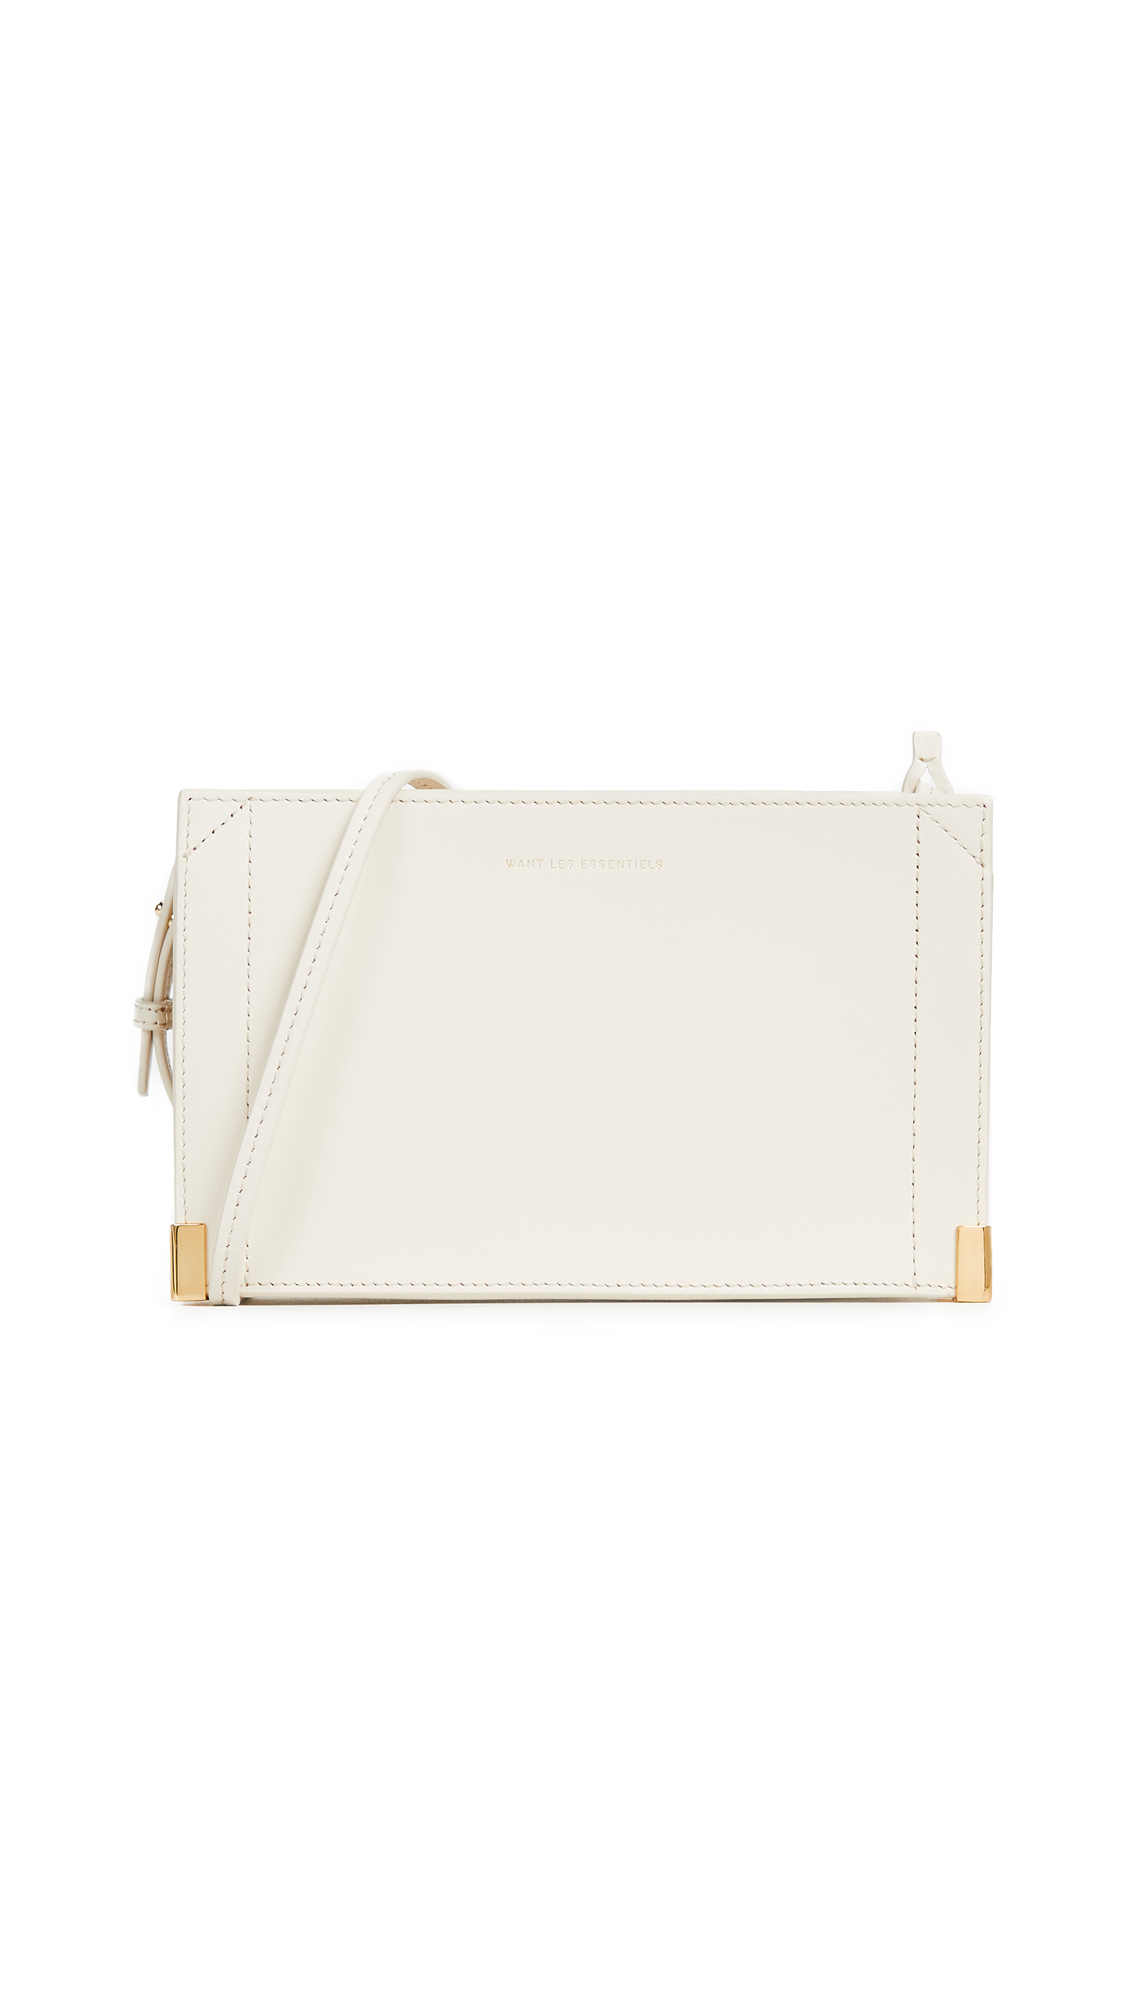 WANT LES ESSENTIELS Mini Marin Convertible Clutch